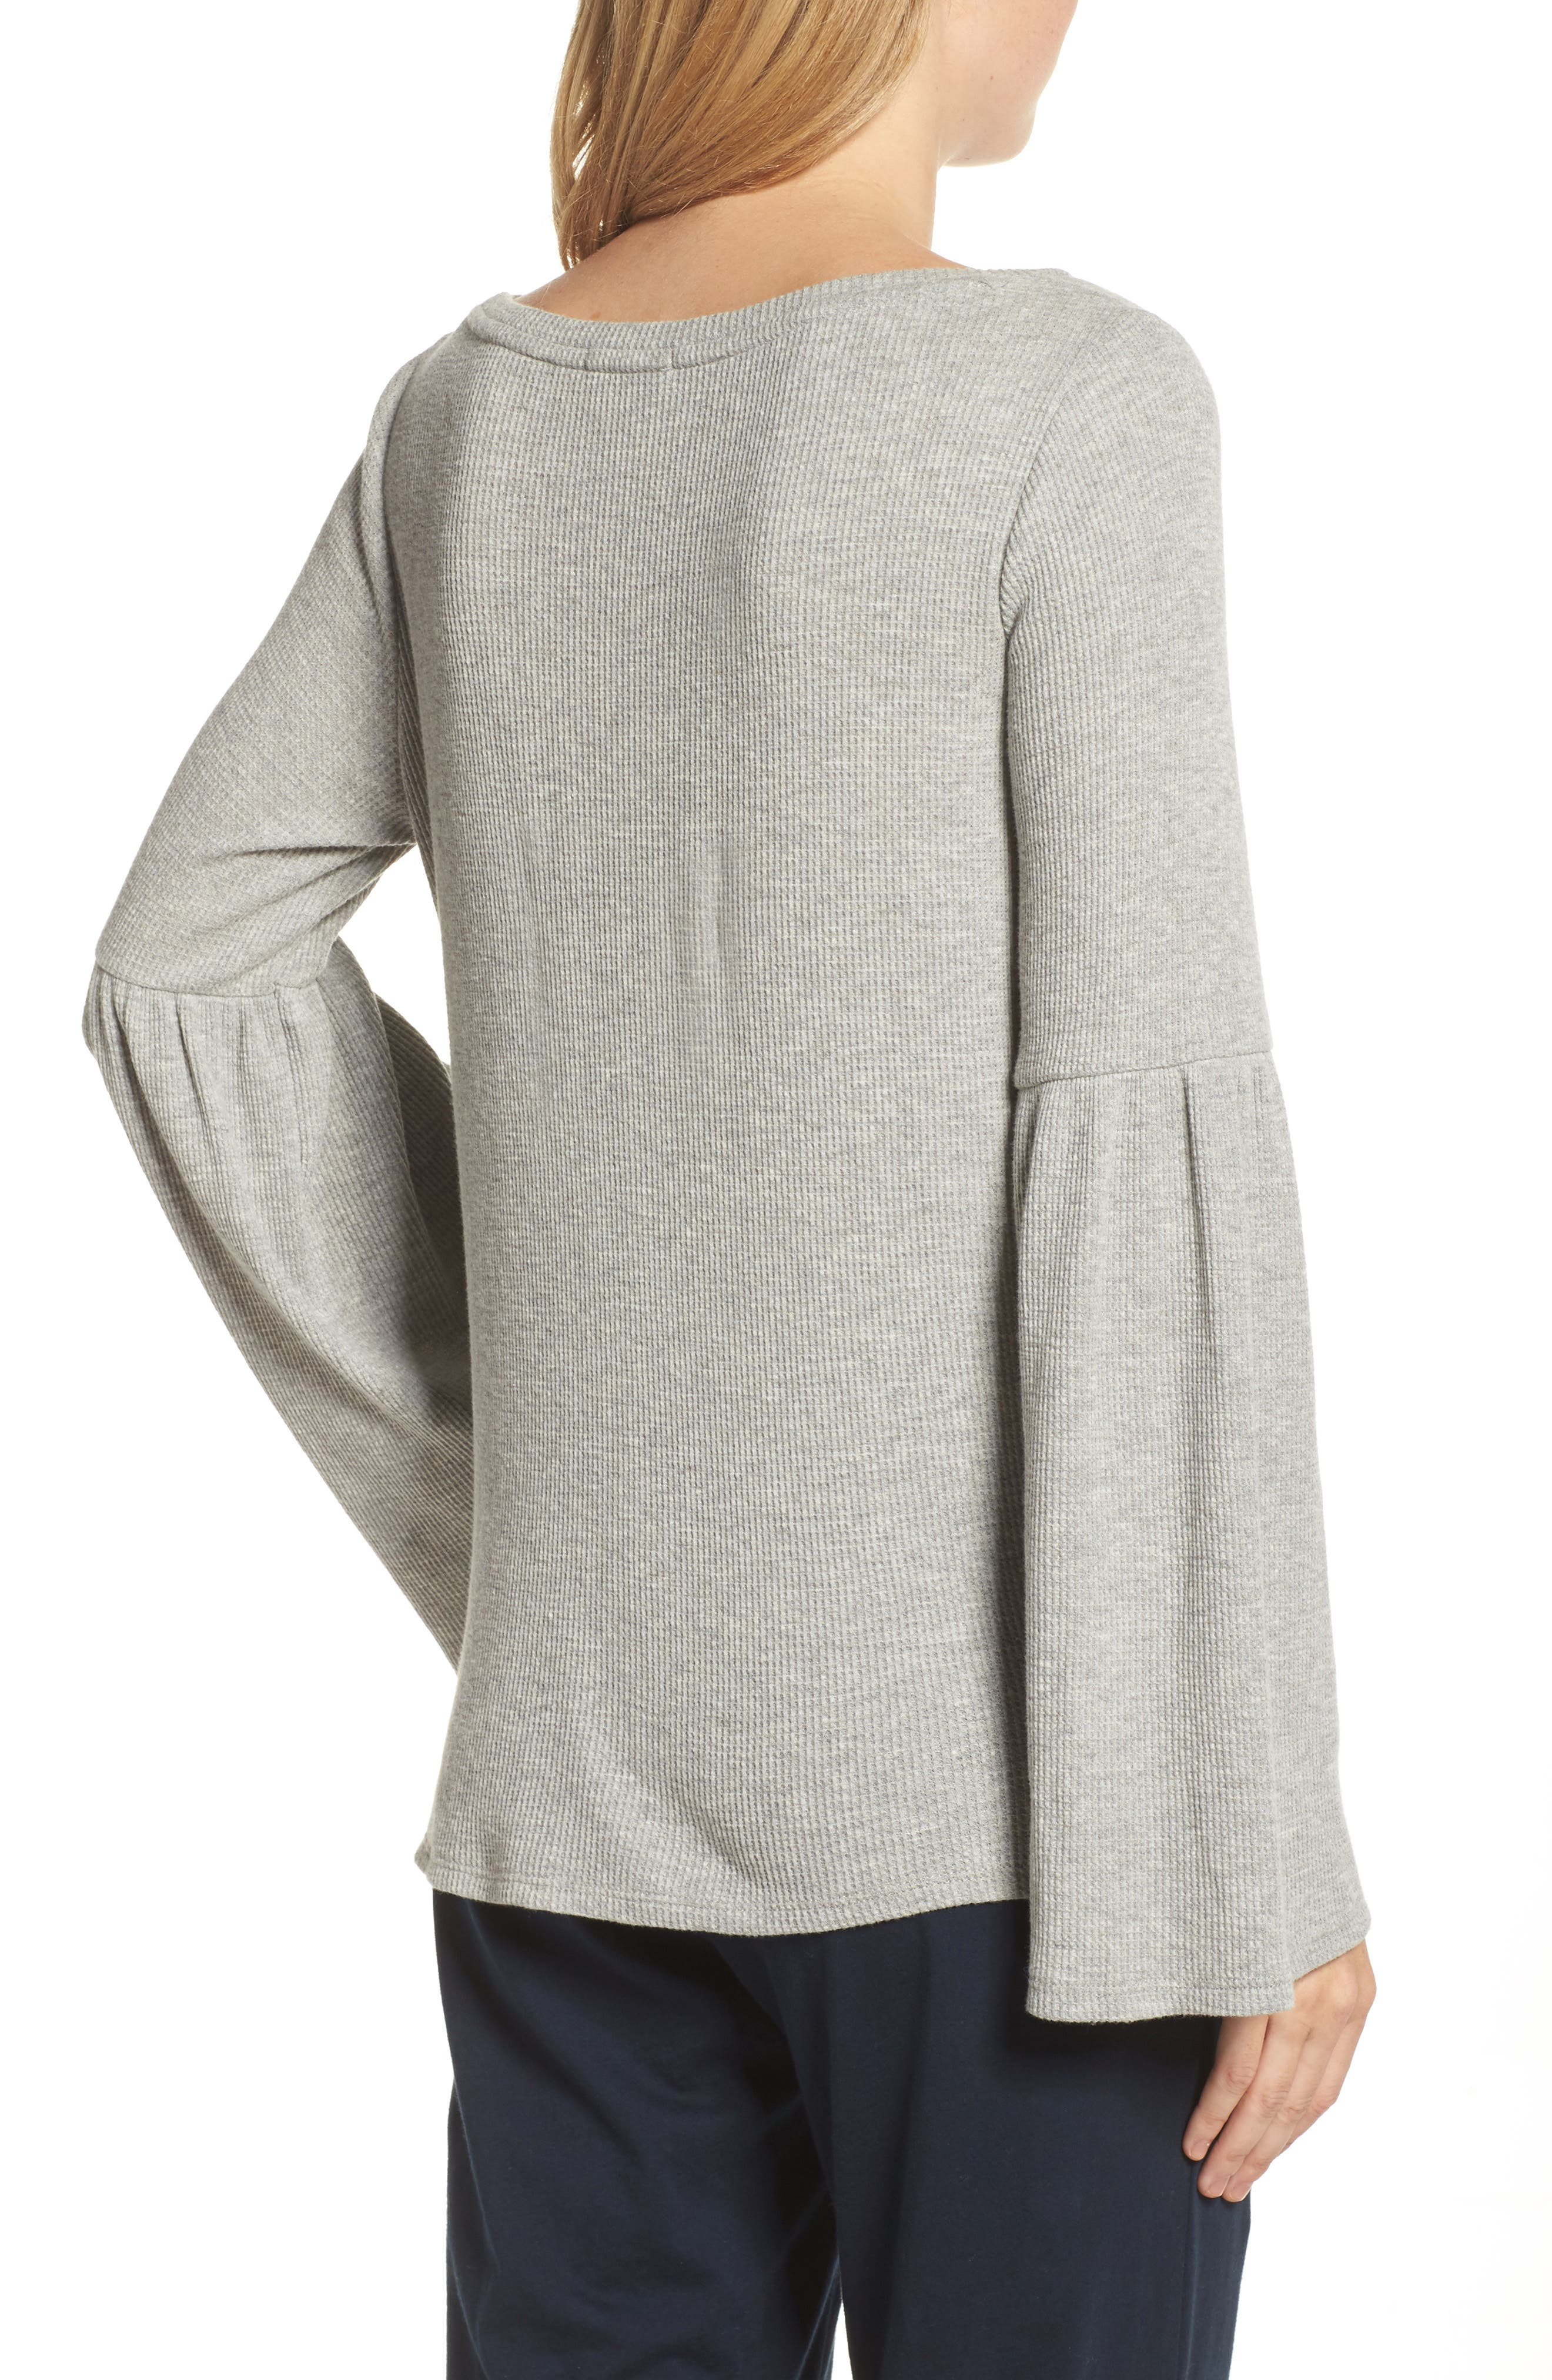 Imo Thermal Knit Tee,                             Alternate thumbnail 2, color,                             020